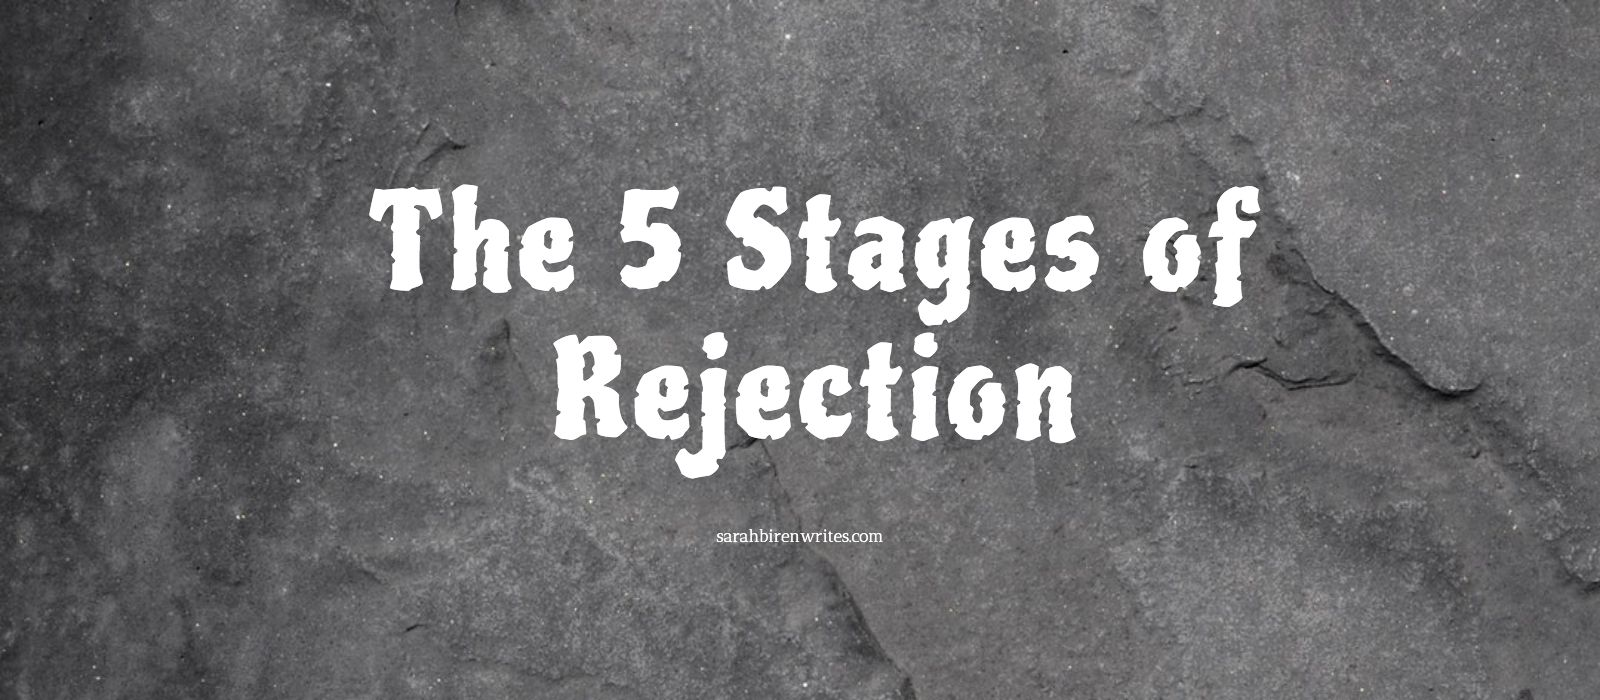 The 5 Stages of Rejection | Sarah Biren Writes